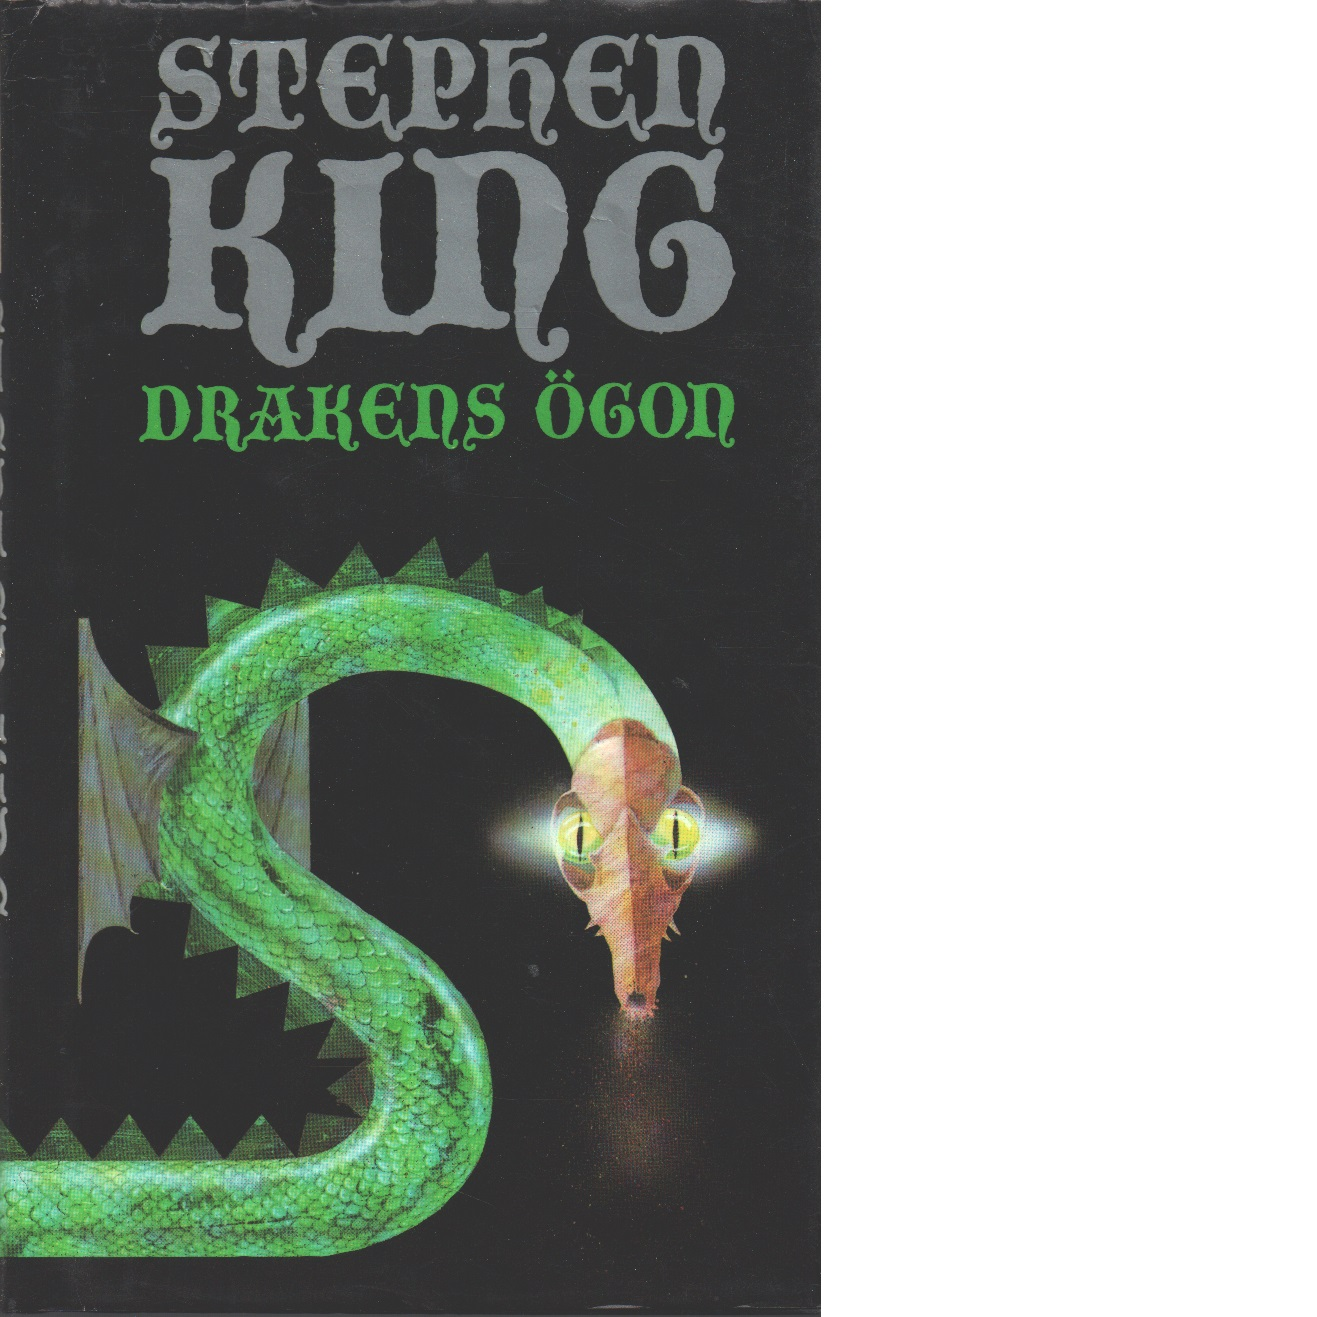 Drakens ögon - King, Stephen